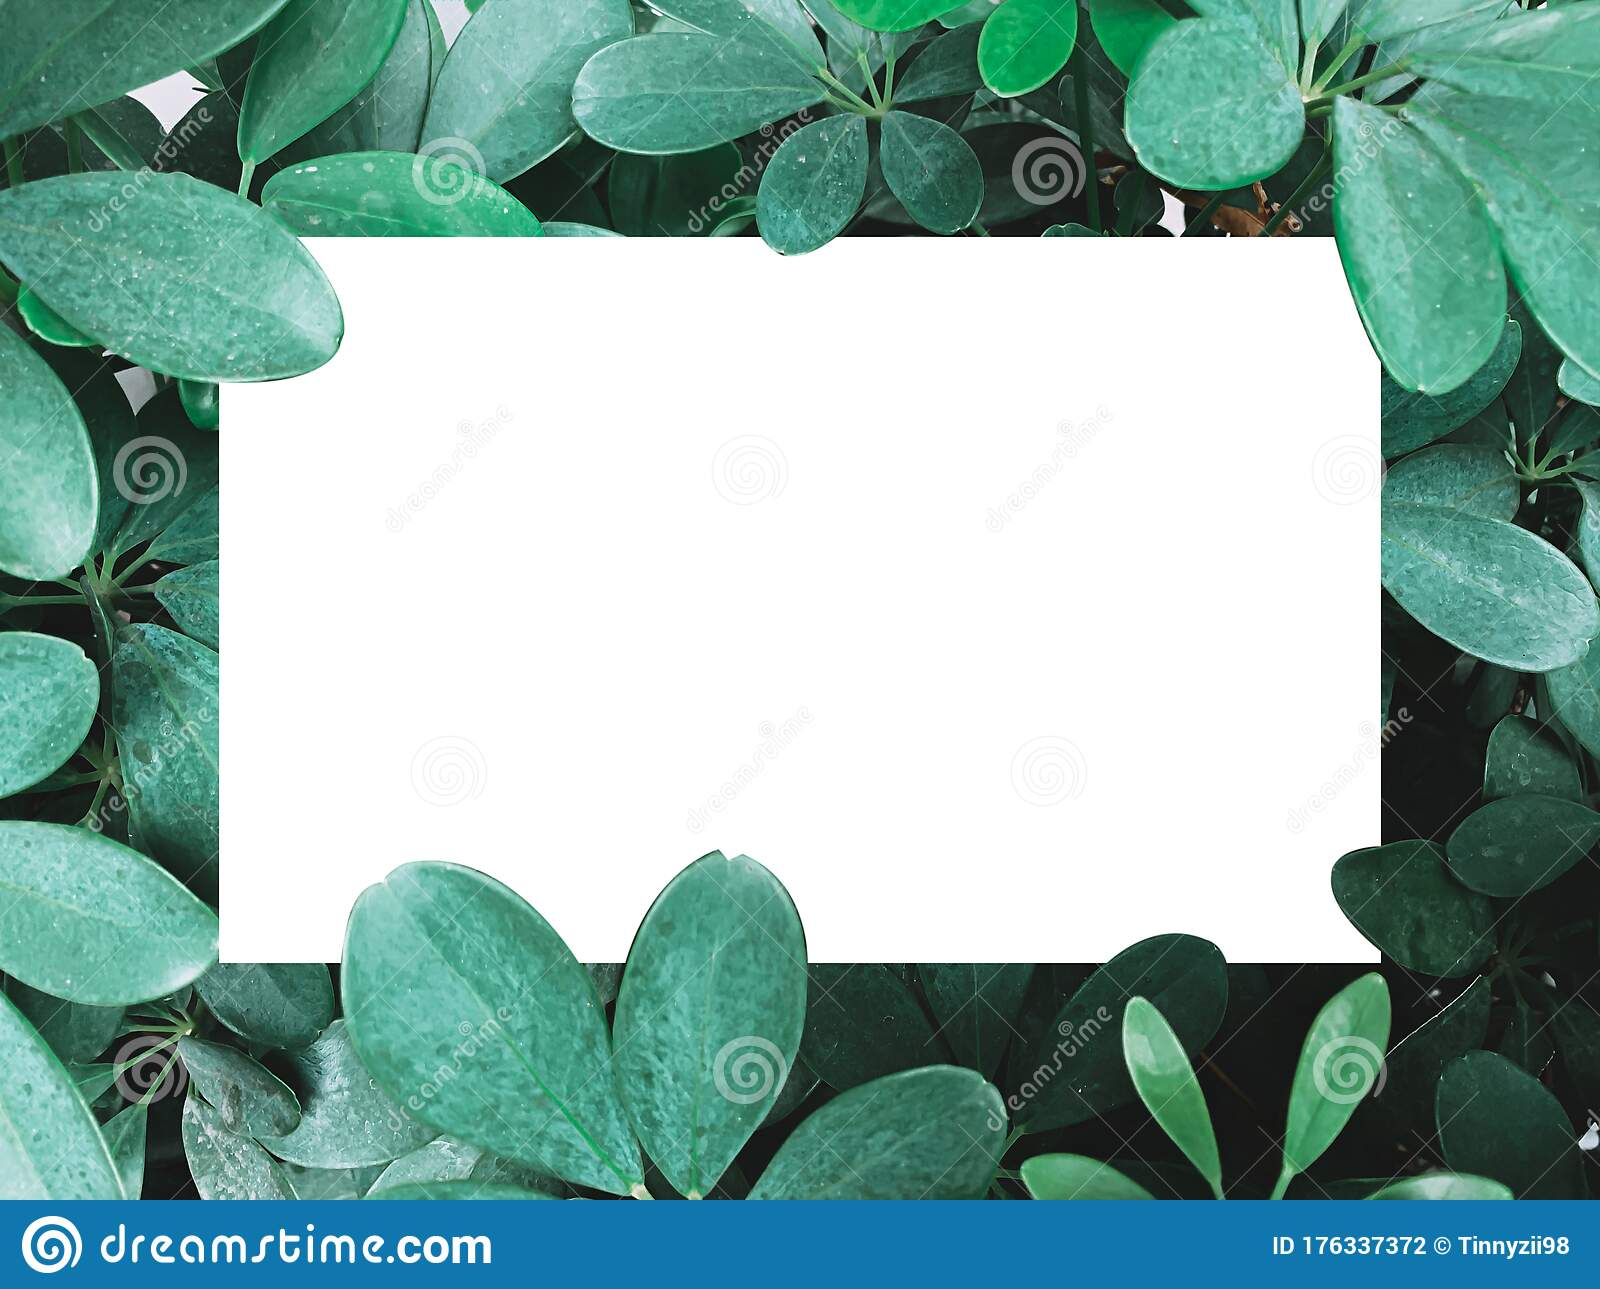 Beautiful Of Dark Green Leaves Background Or Wallpaper Stock Photo